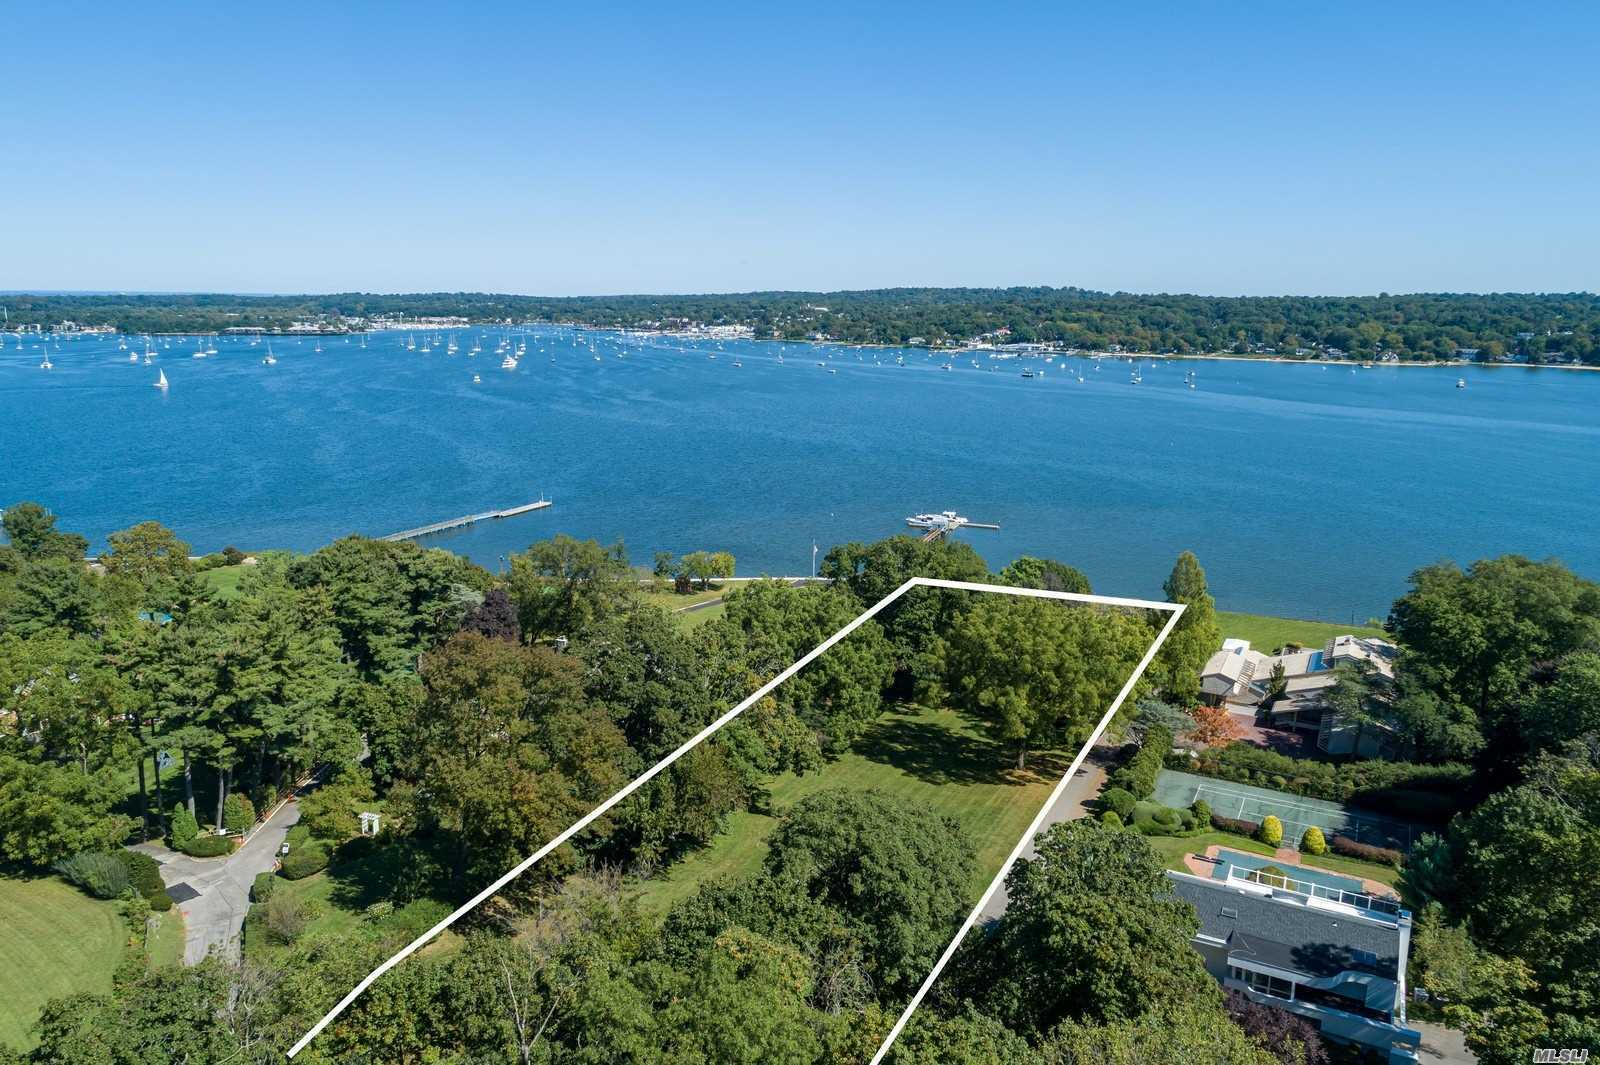 Breathtaking Unobstructed Panoramic View of Manhasset Bay, Exquisite in Everyway. Plans and Permits Ready For Building A 10, 770 Sq. Ft Home.